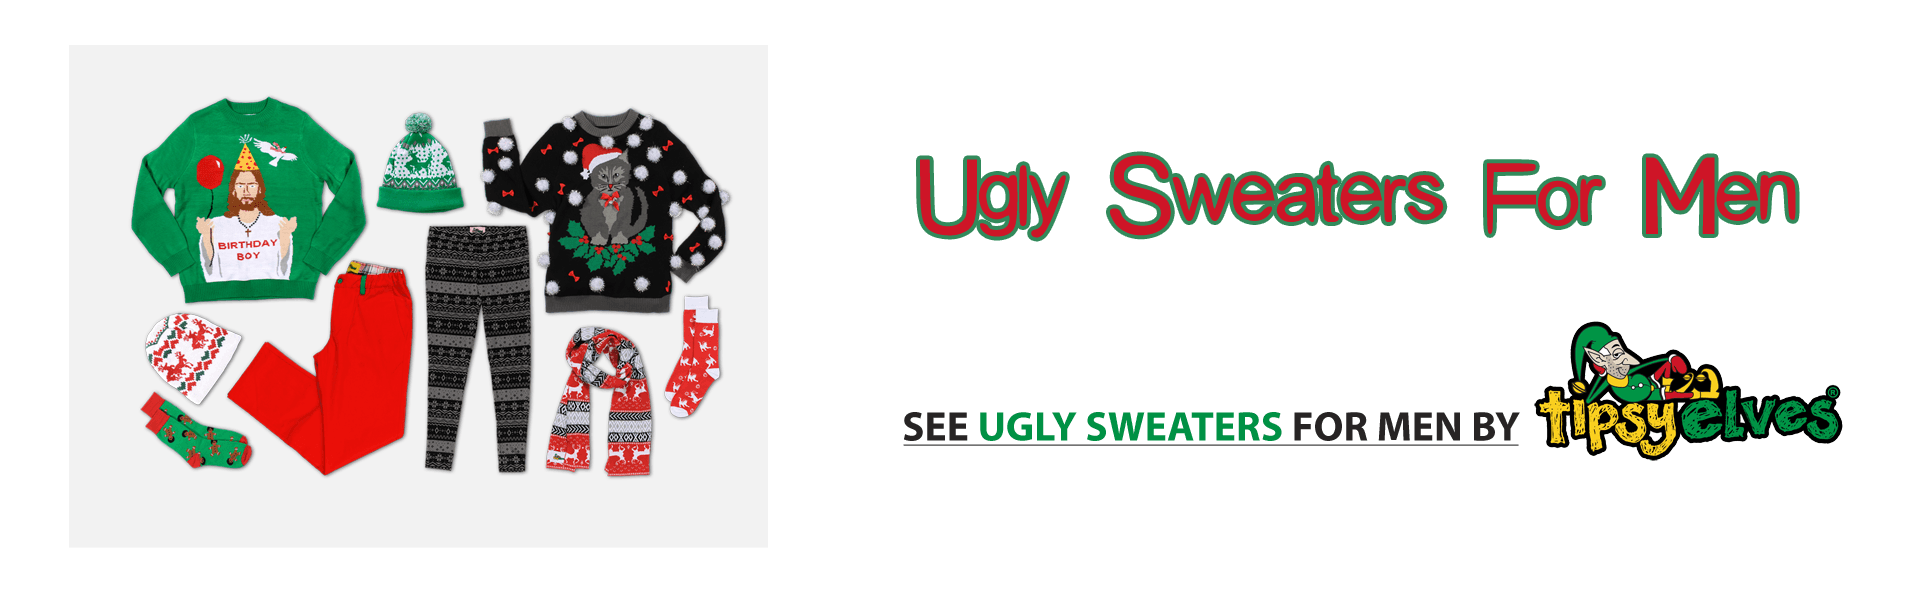 ugly sweaters for men